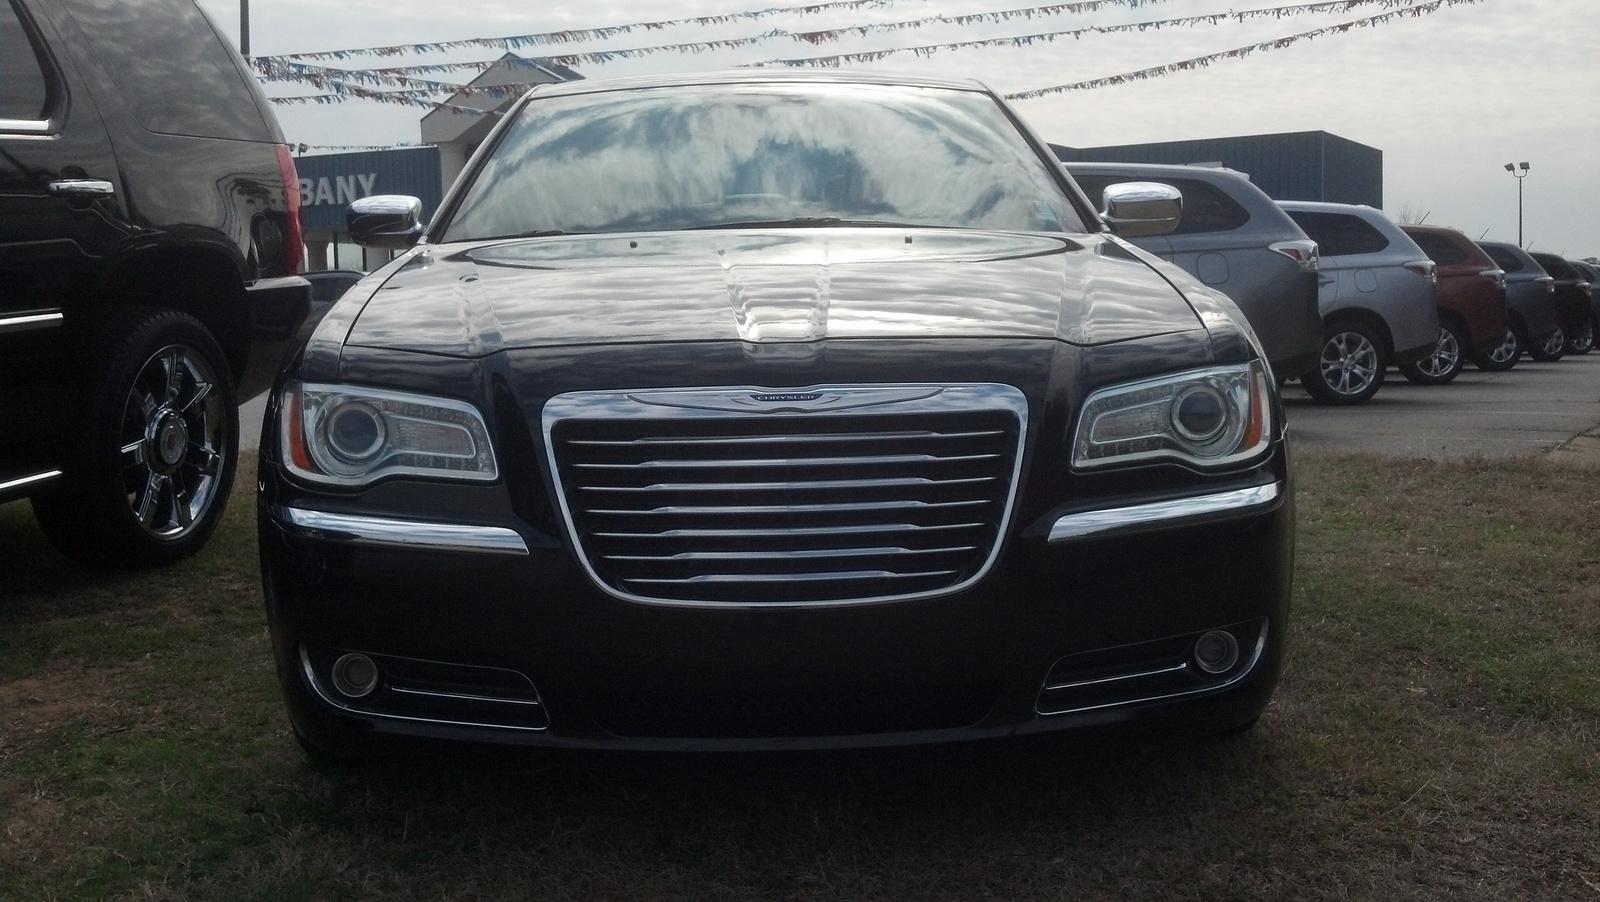 used chrysler 300 for sale albany ga cargurus used chrysler 300 for. Cars Review. Best American Auto & Cars Review